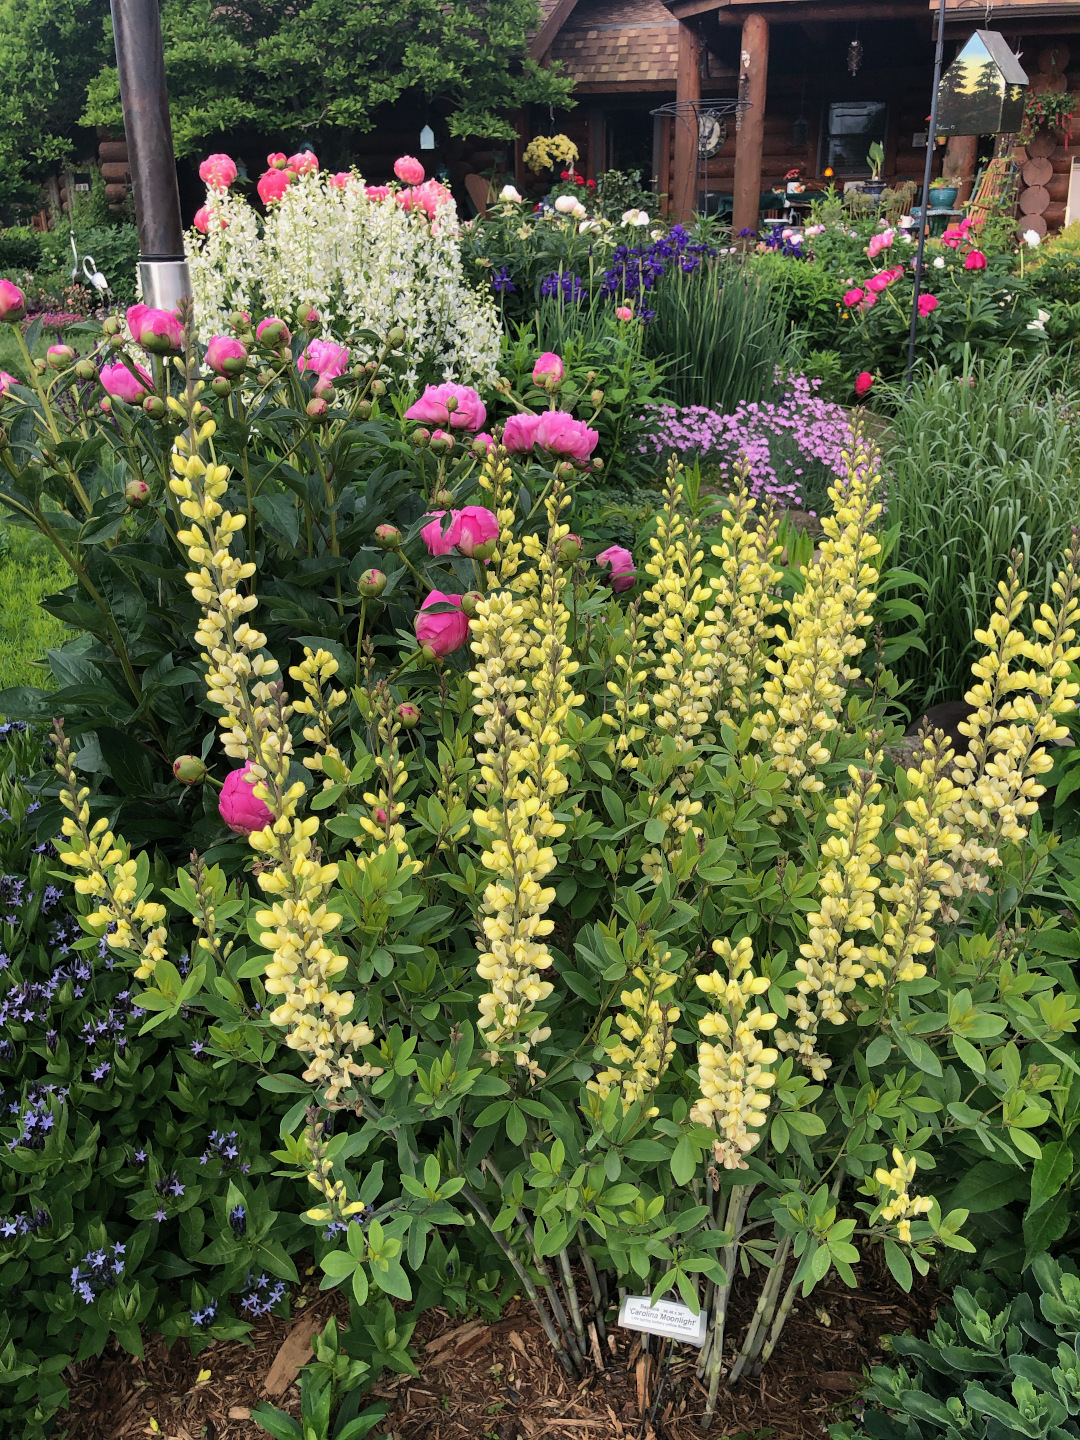 Tall spikes of pale yellow flowers in front of a flower garden